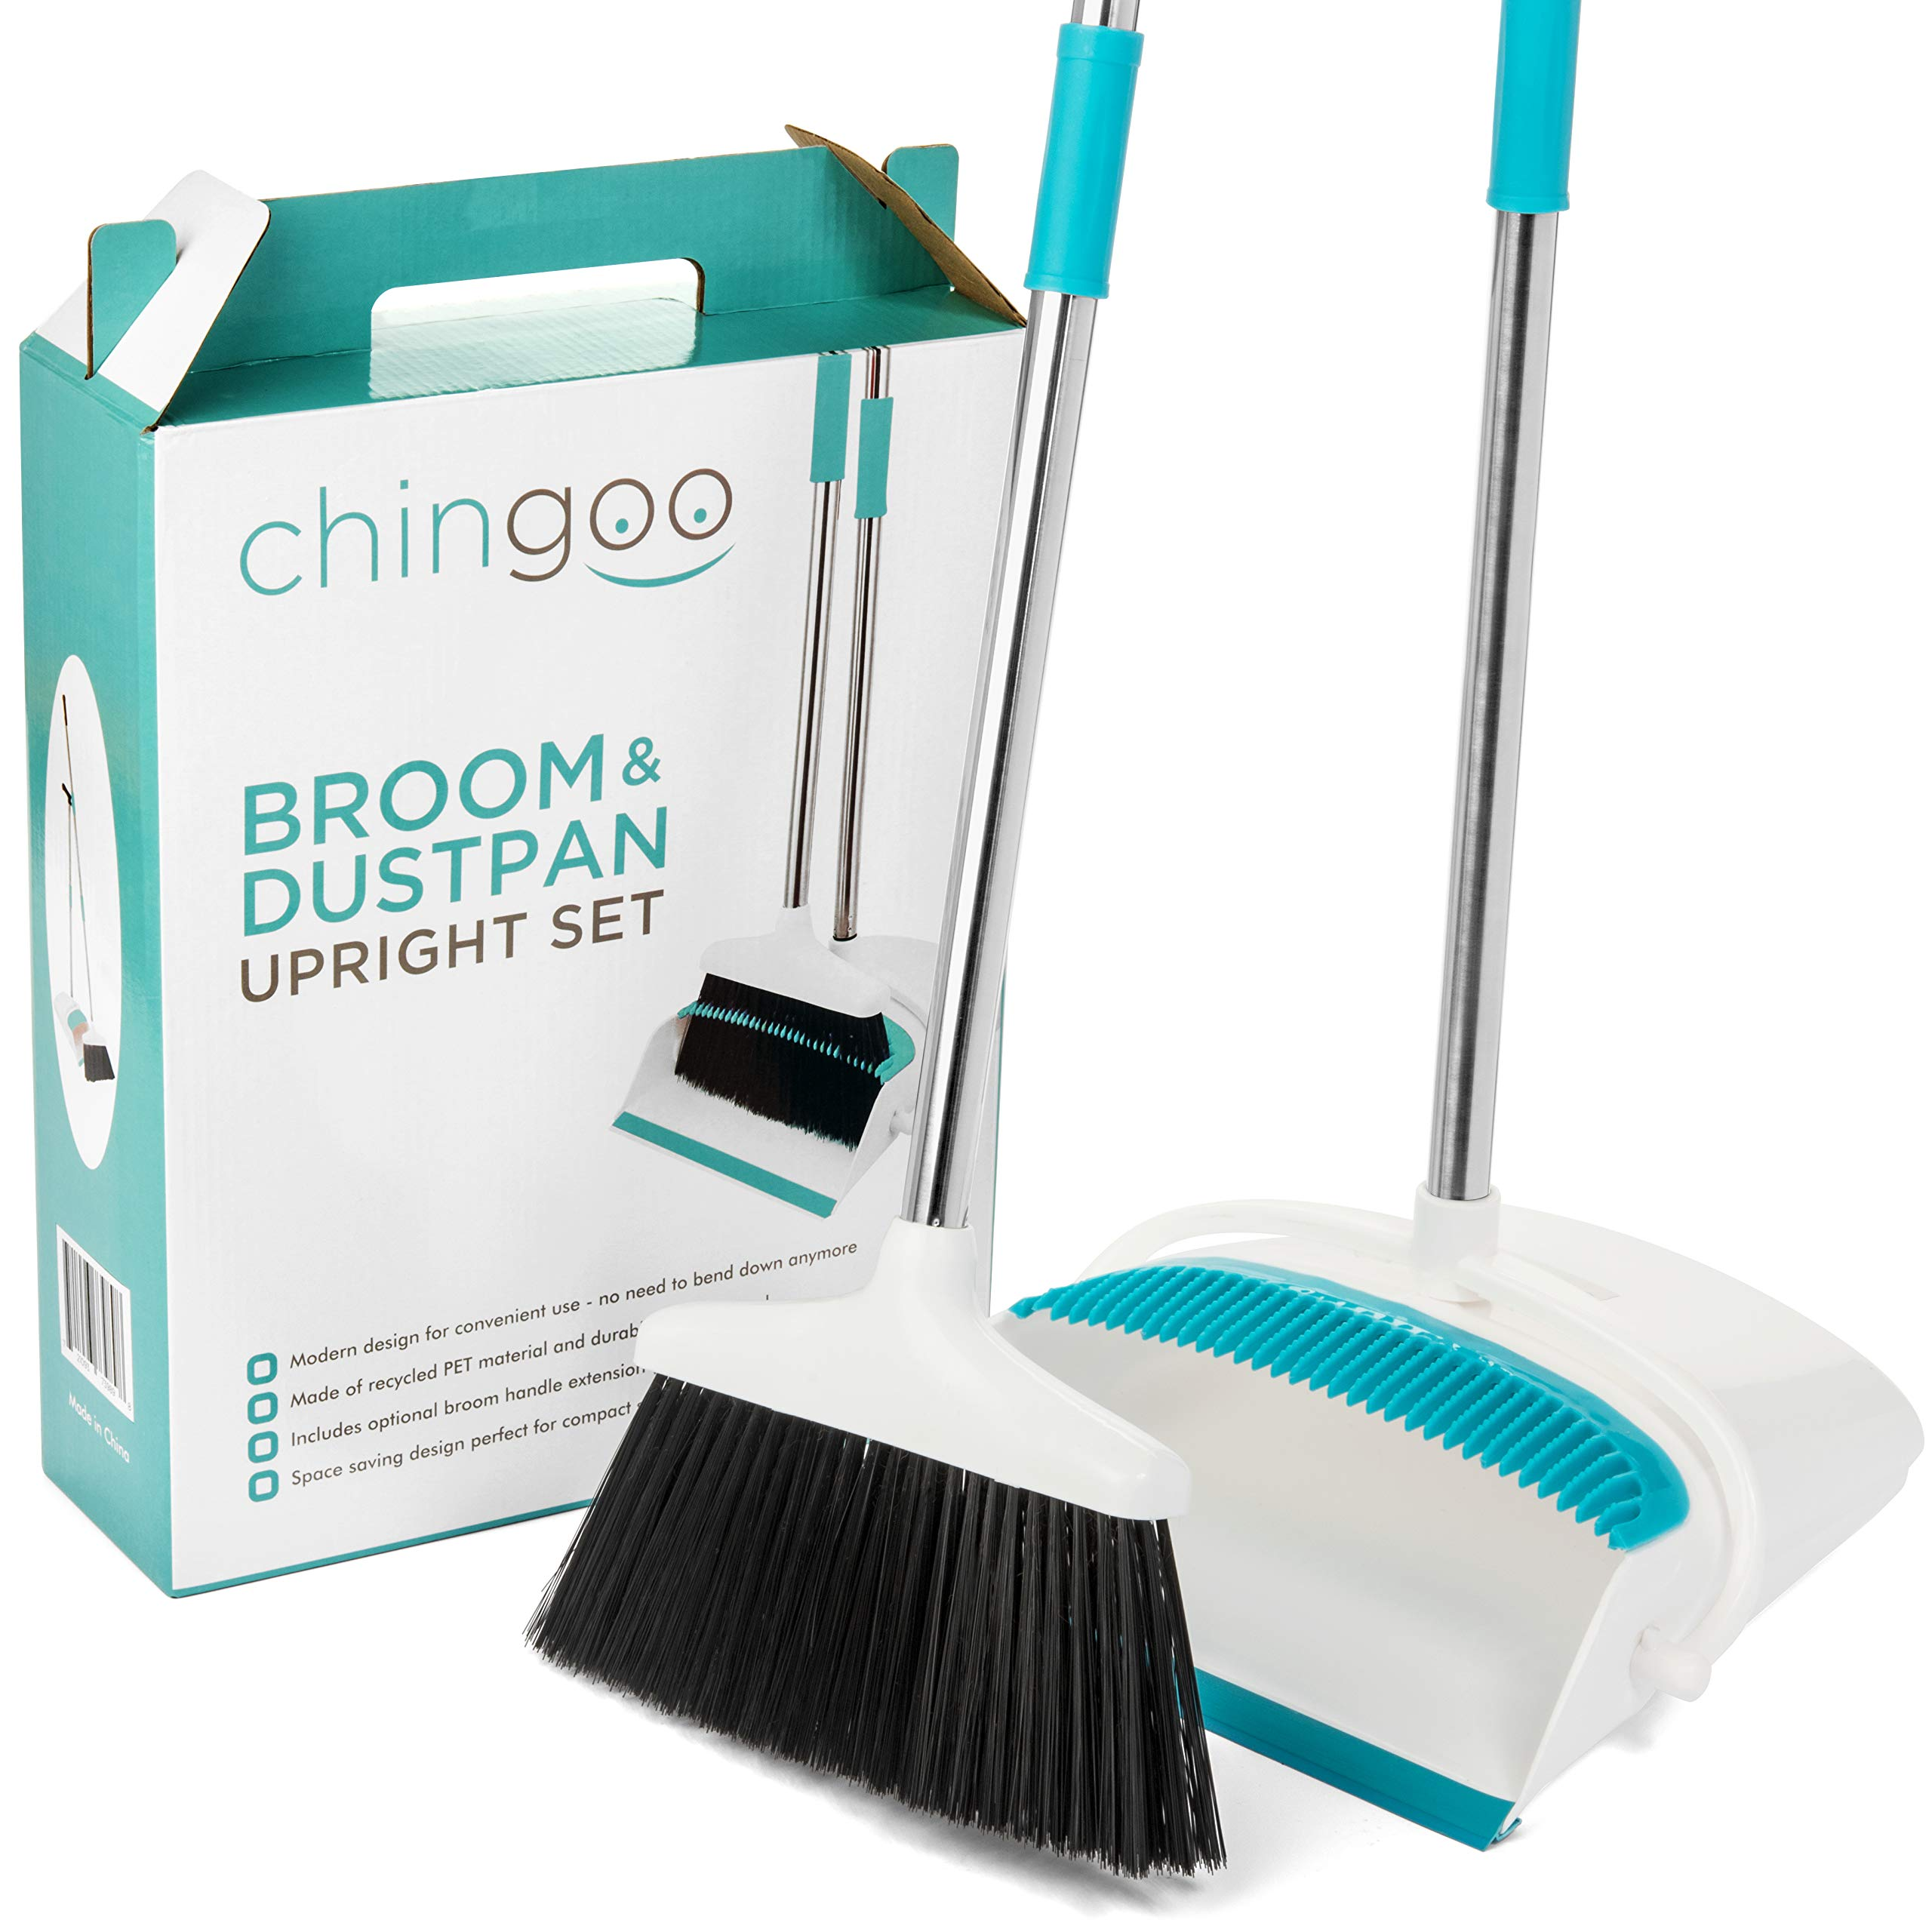 Broom and Dustpan Set by Chingoo - Custom Color Dust Pan with Long Handle, Bristle Combing Teeth and Angled Rubber Edge for Efficient Cleaning - Stop Back Pain with Optional Broom Handle Extension by Chingoo (Image #2)